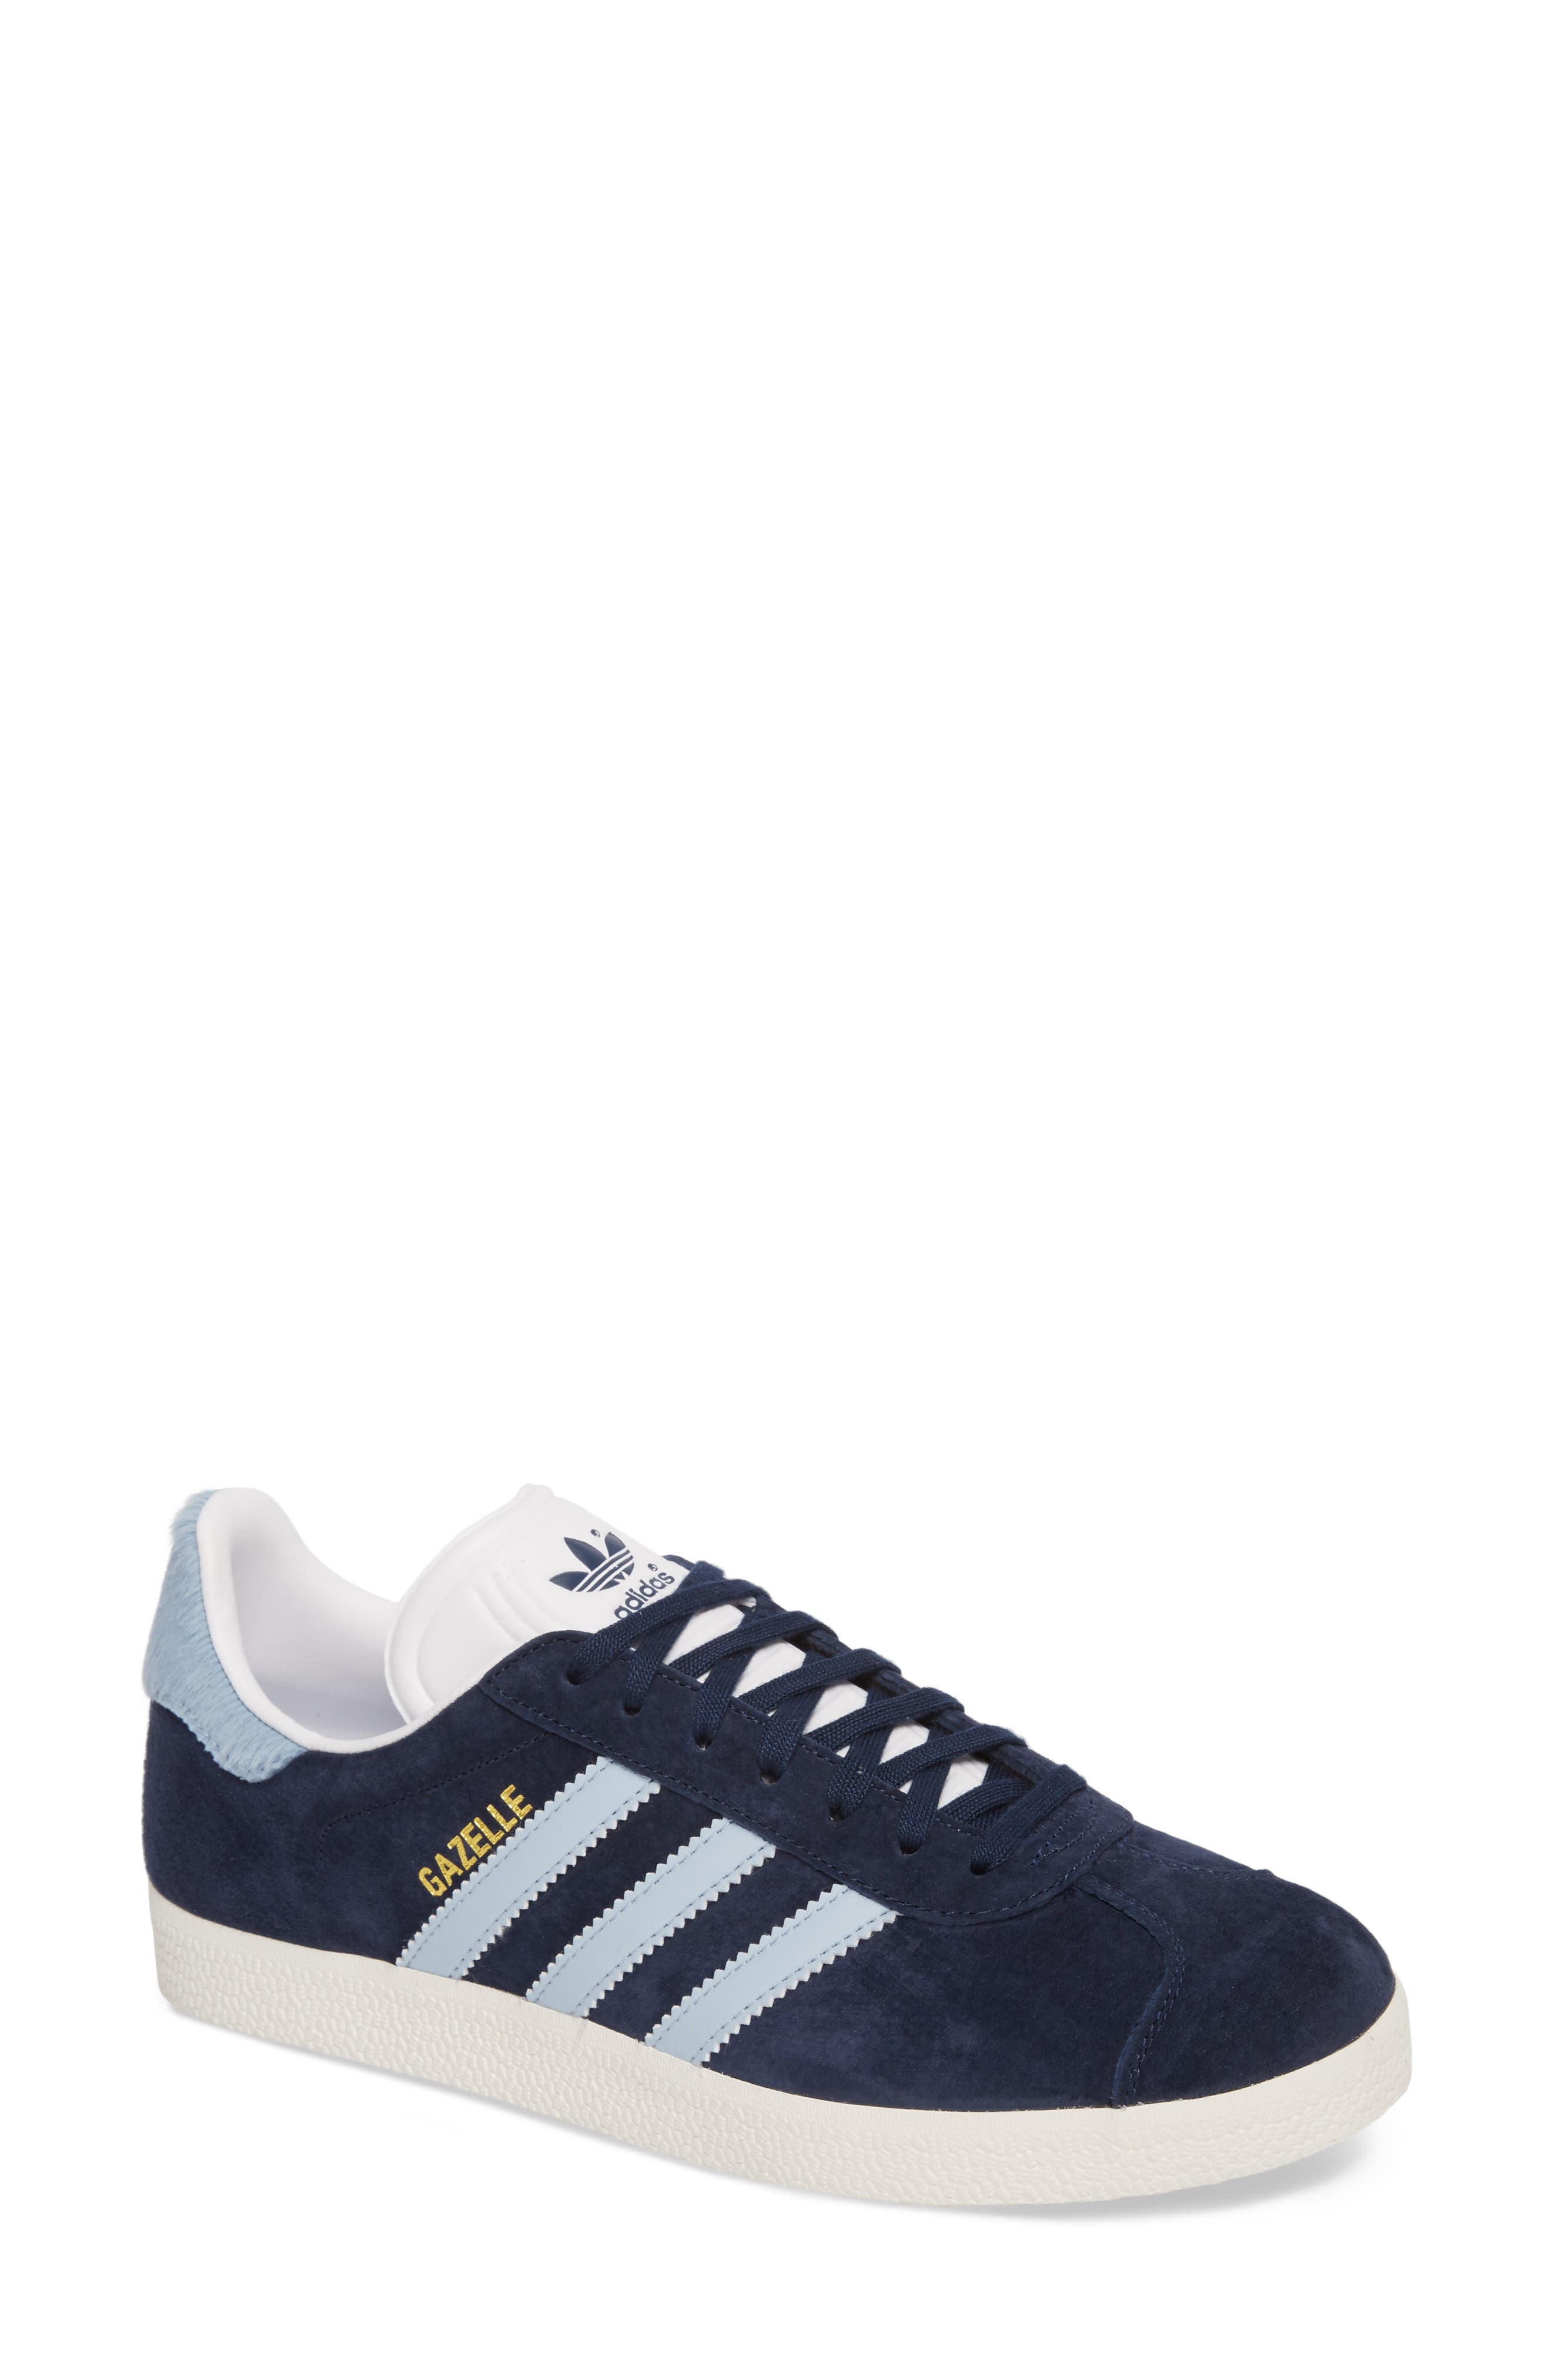 Gazelle Sneaker,                             Main thumbnail 1, color,                             Navy/ Easy Blue/ White